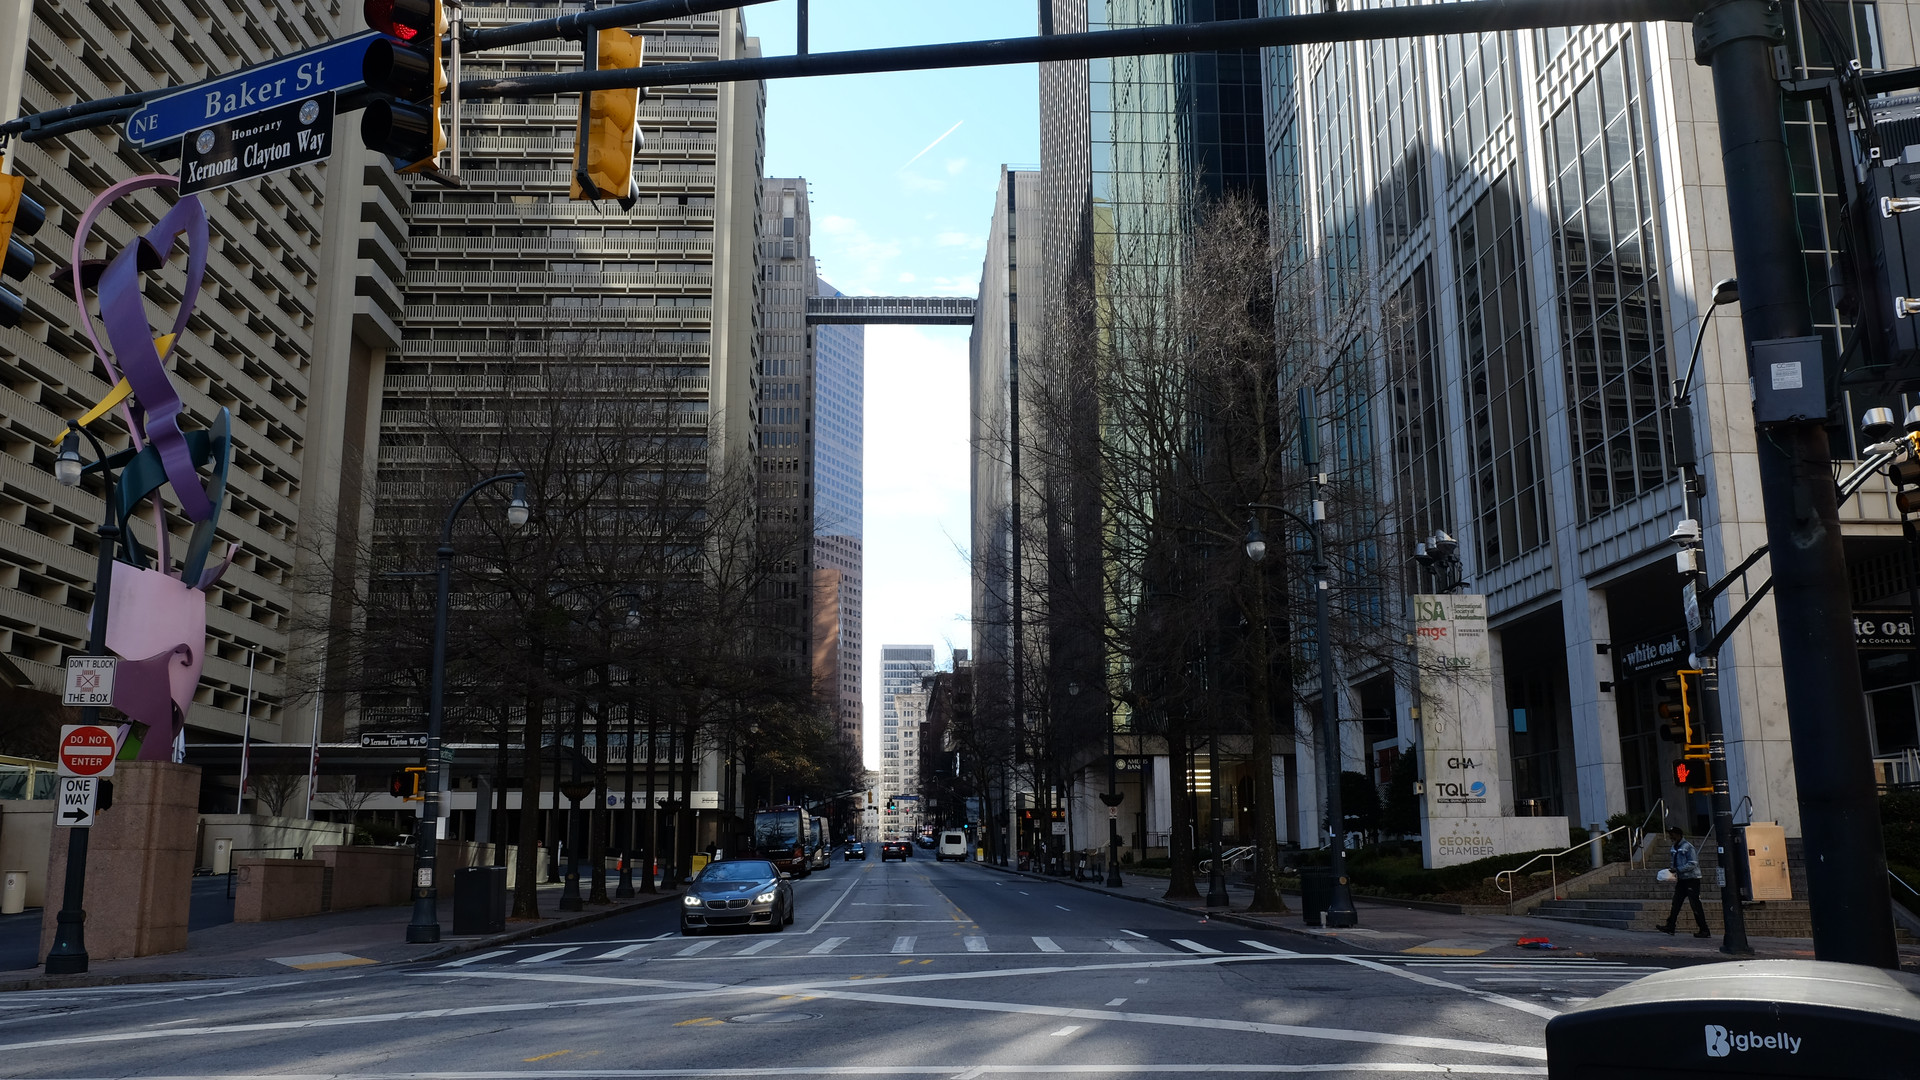 Peachtree Street at Baker Street facing south